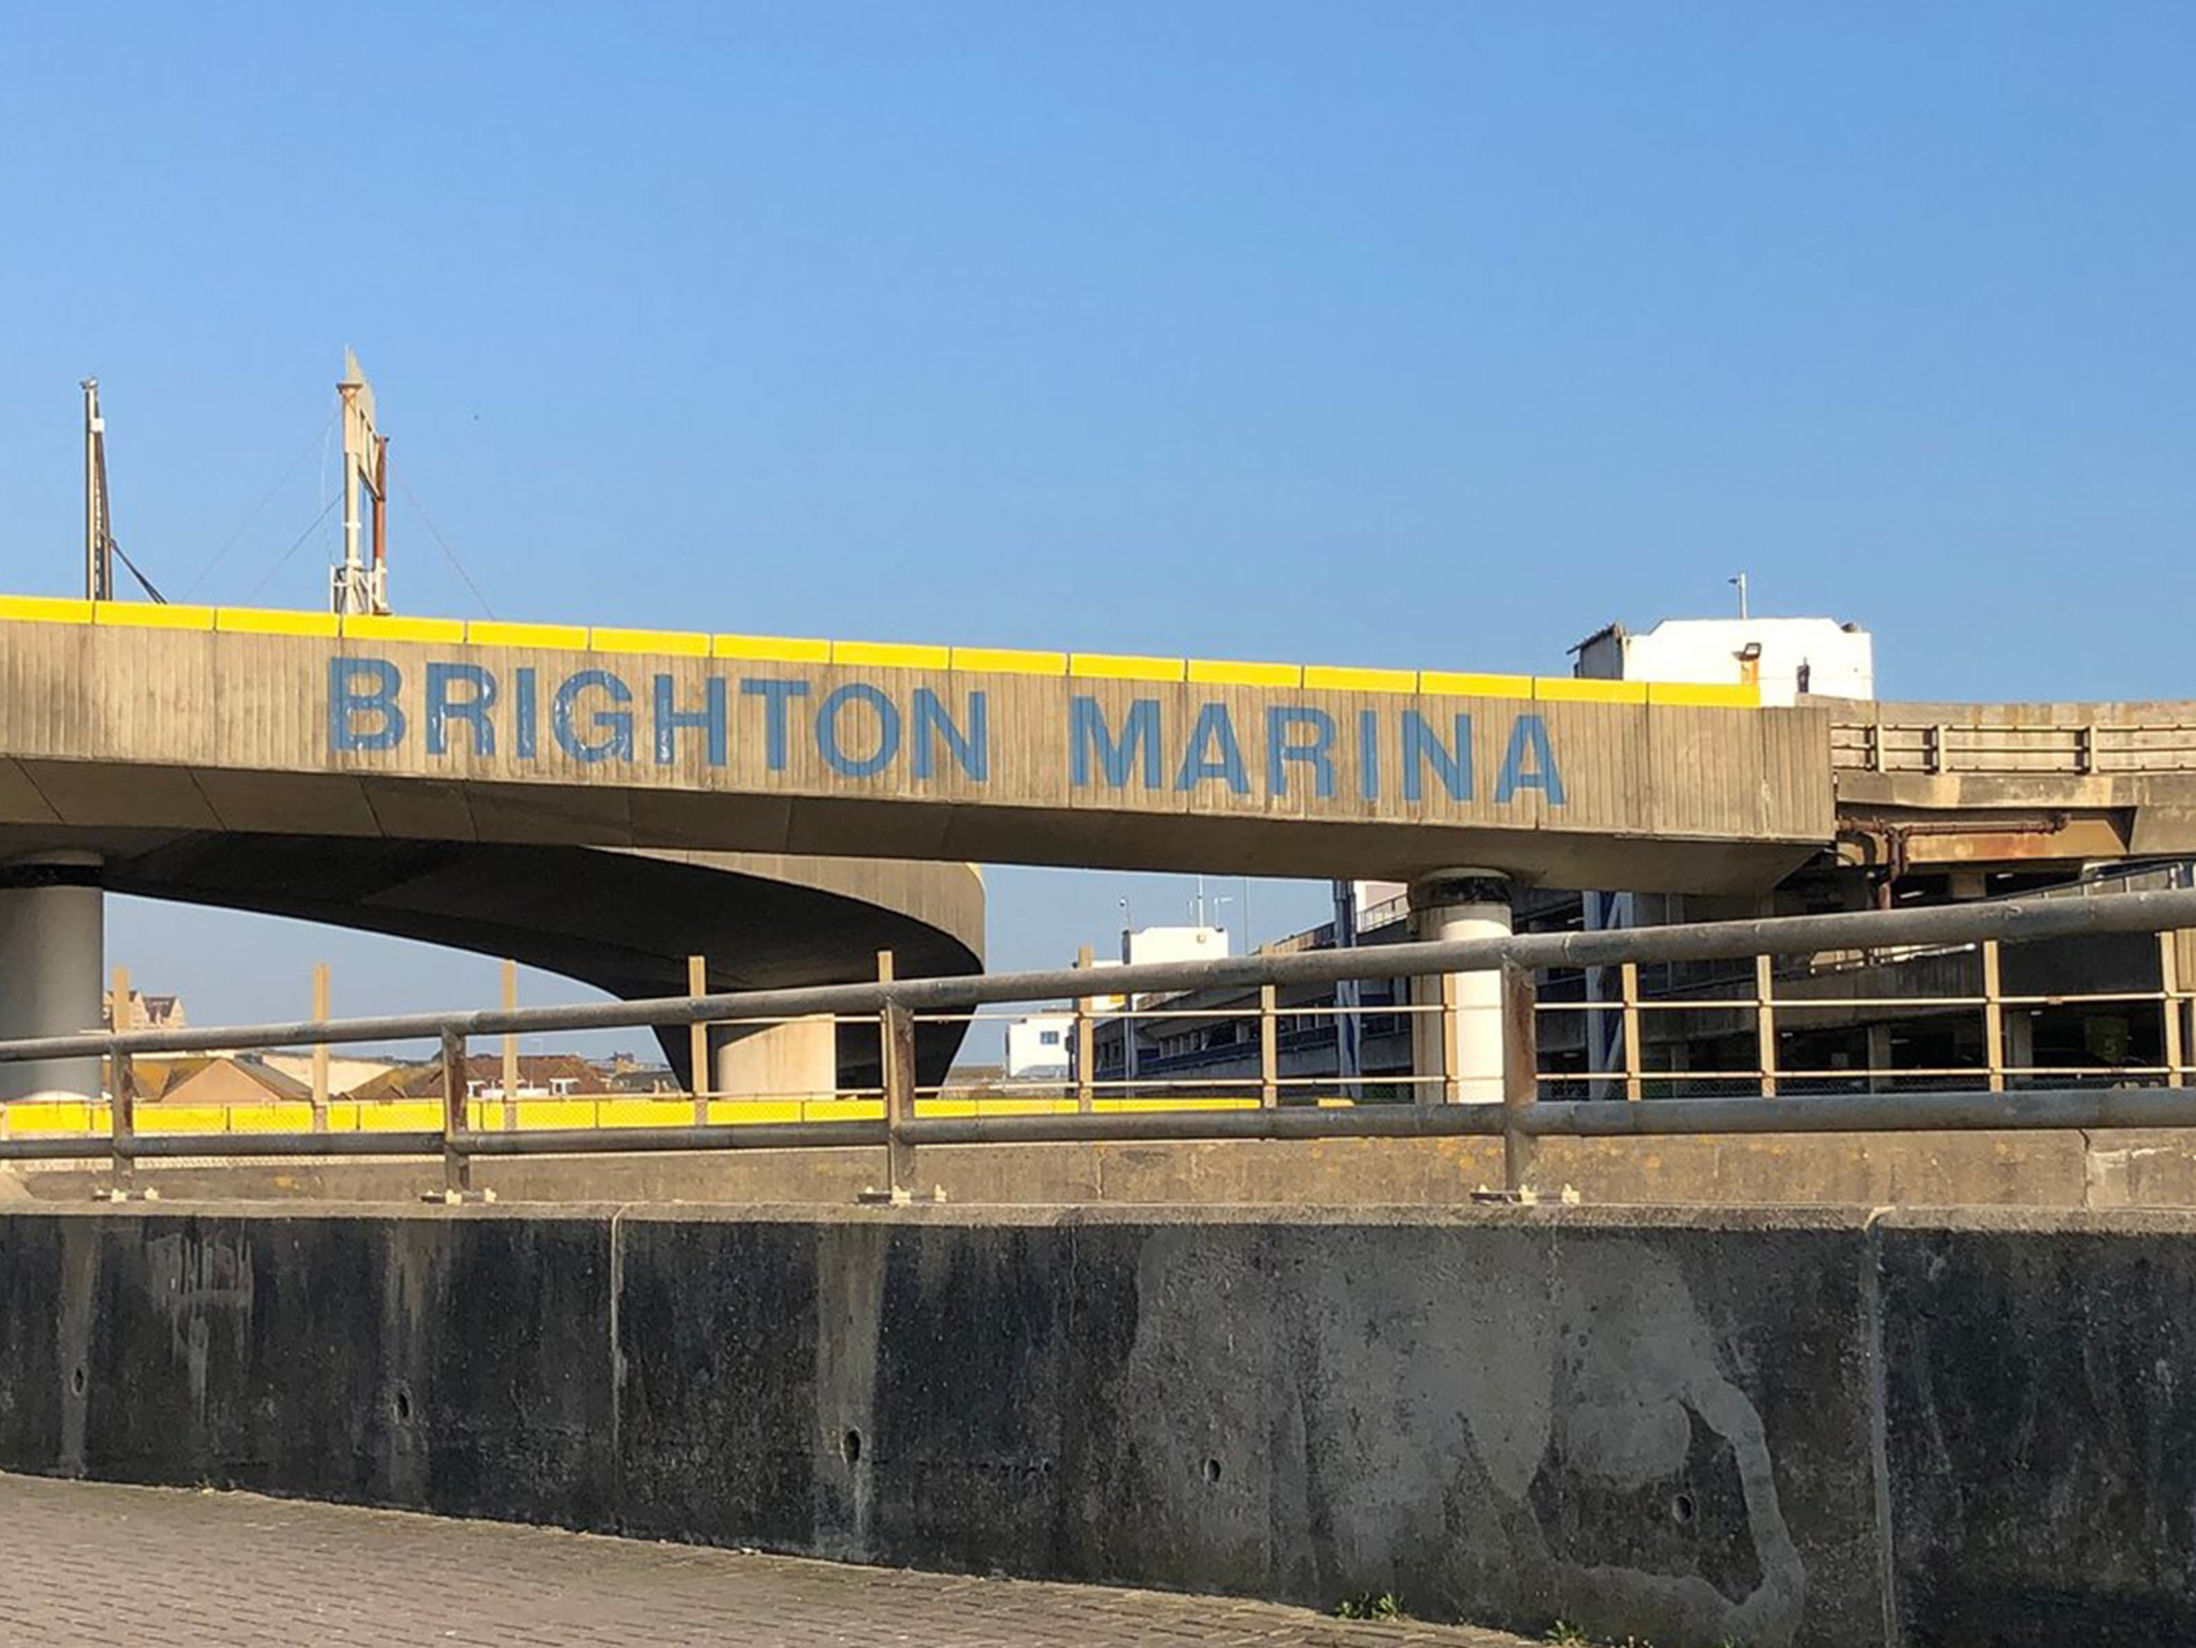 Things To Do in Brighton - Brighton Marina